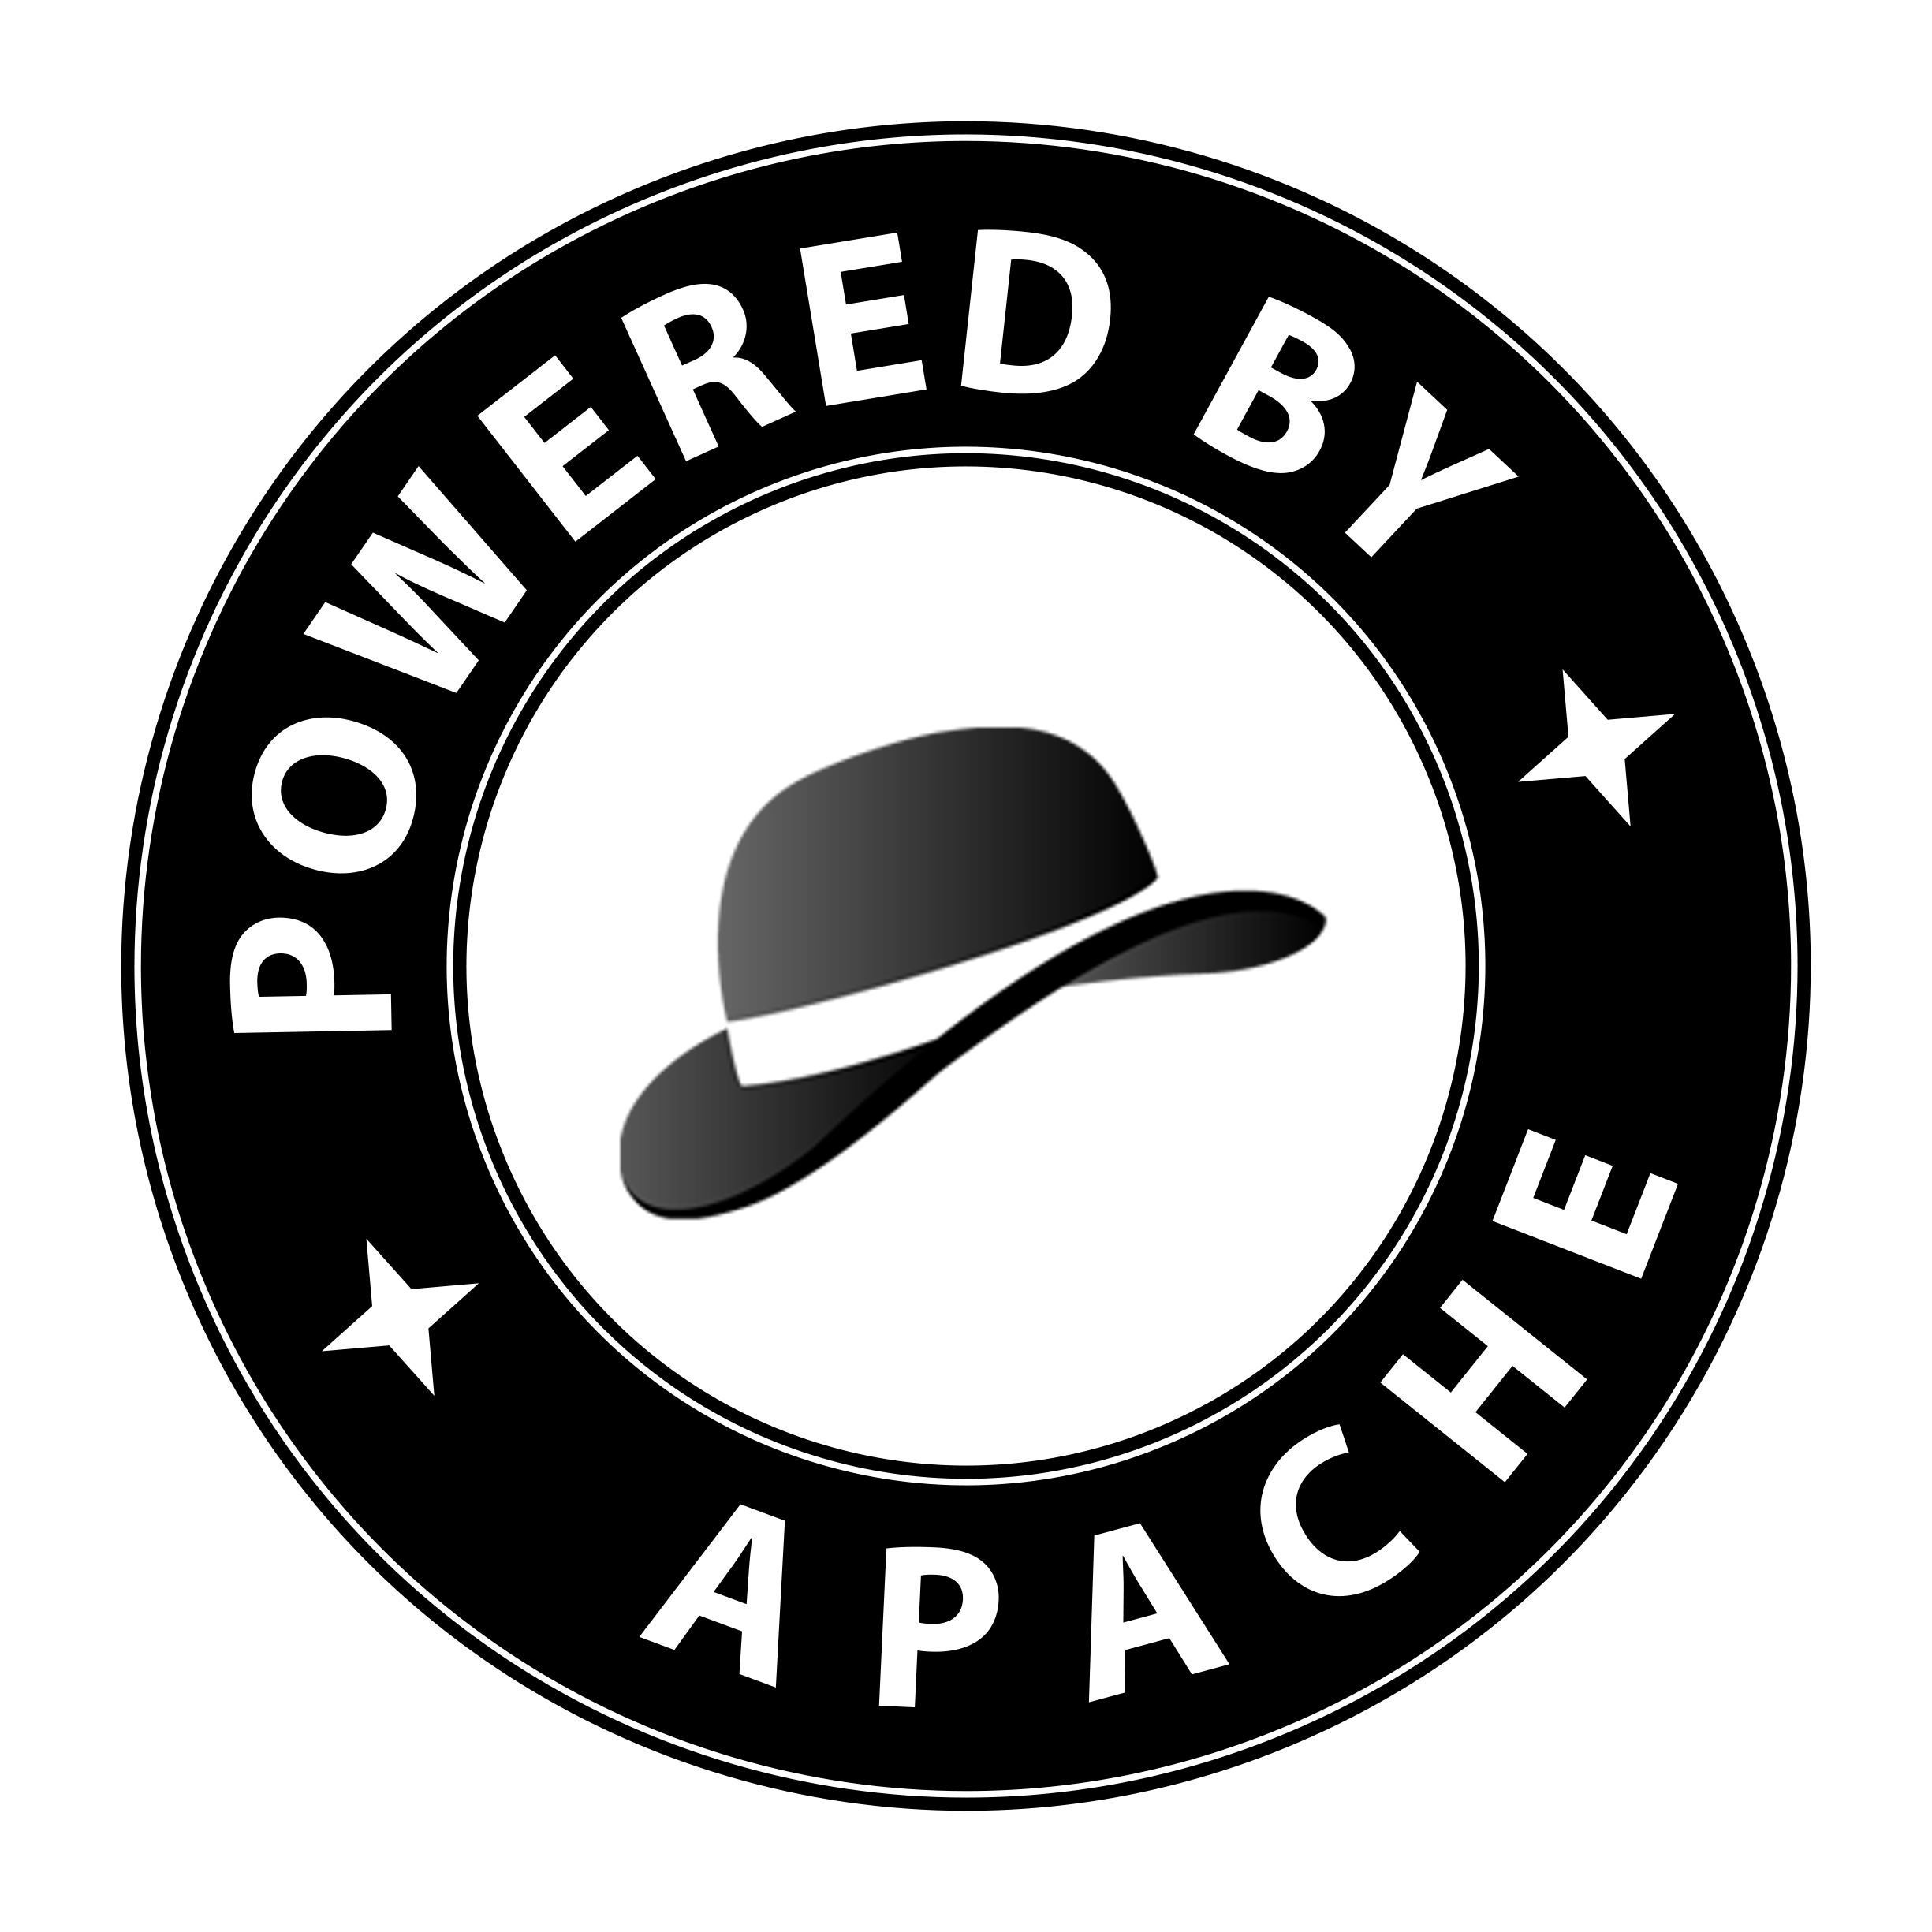 Change color of png photoshop. Apache derby logo finallogowithnimbuspng